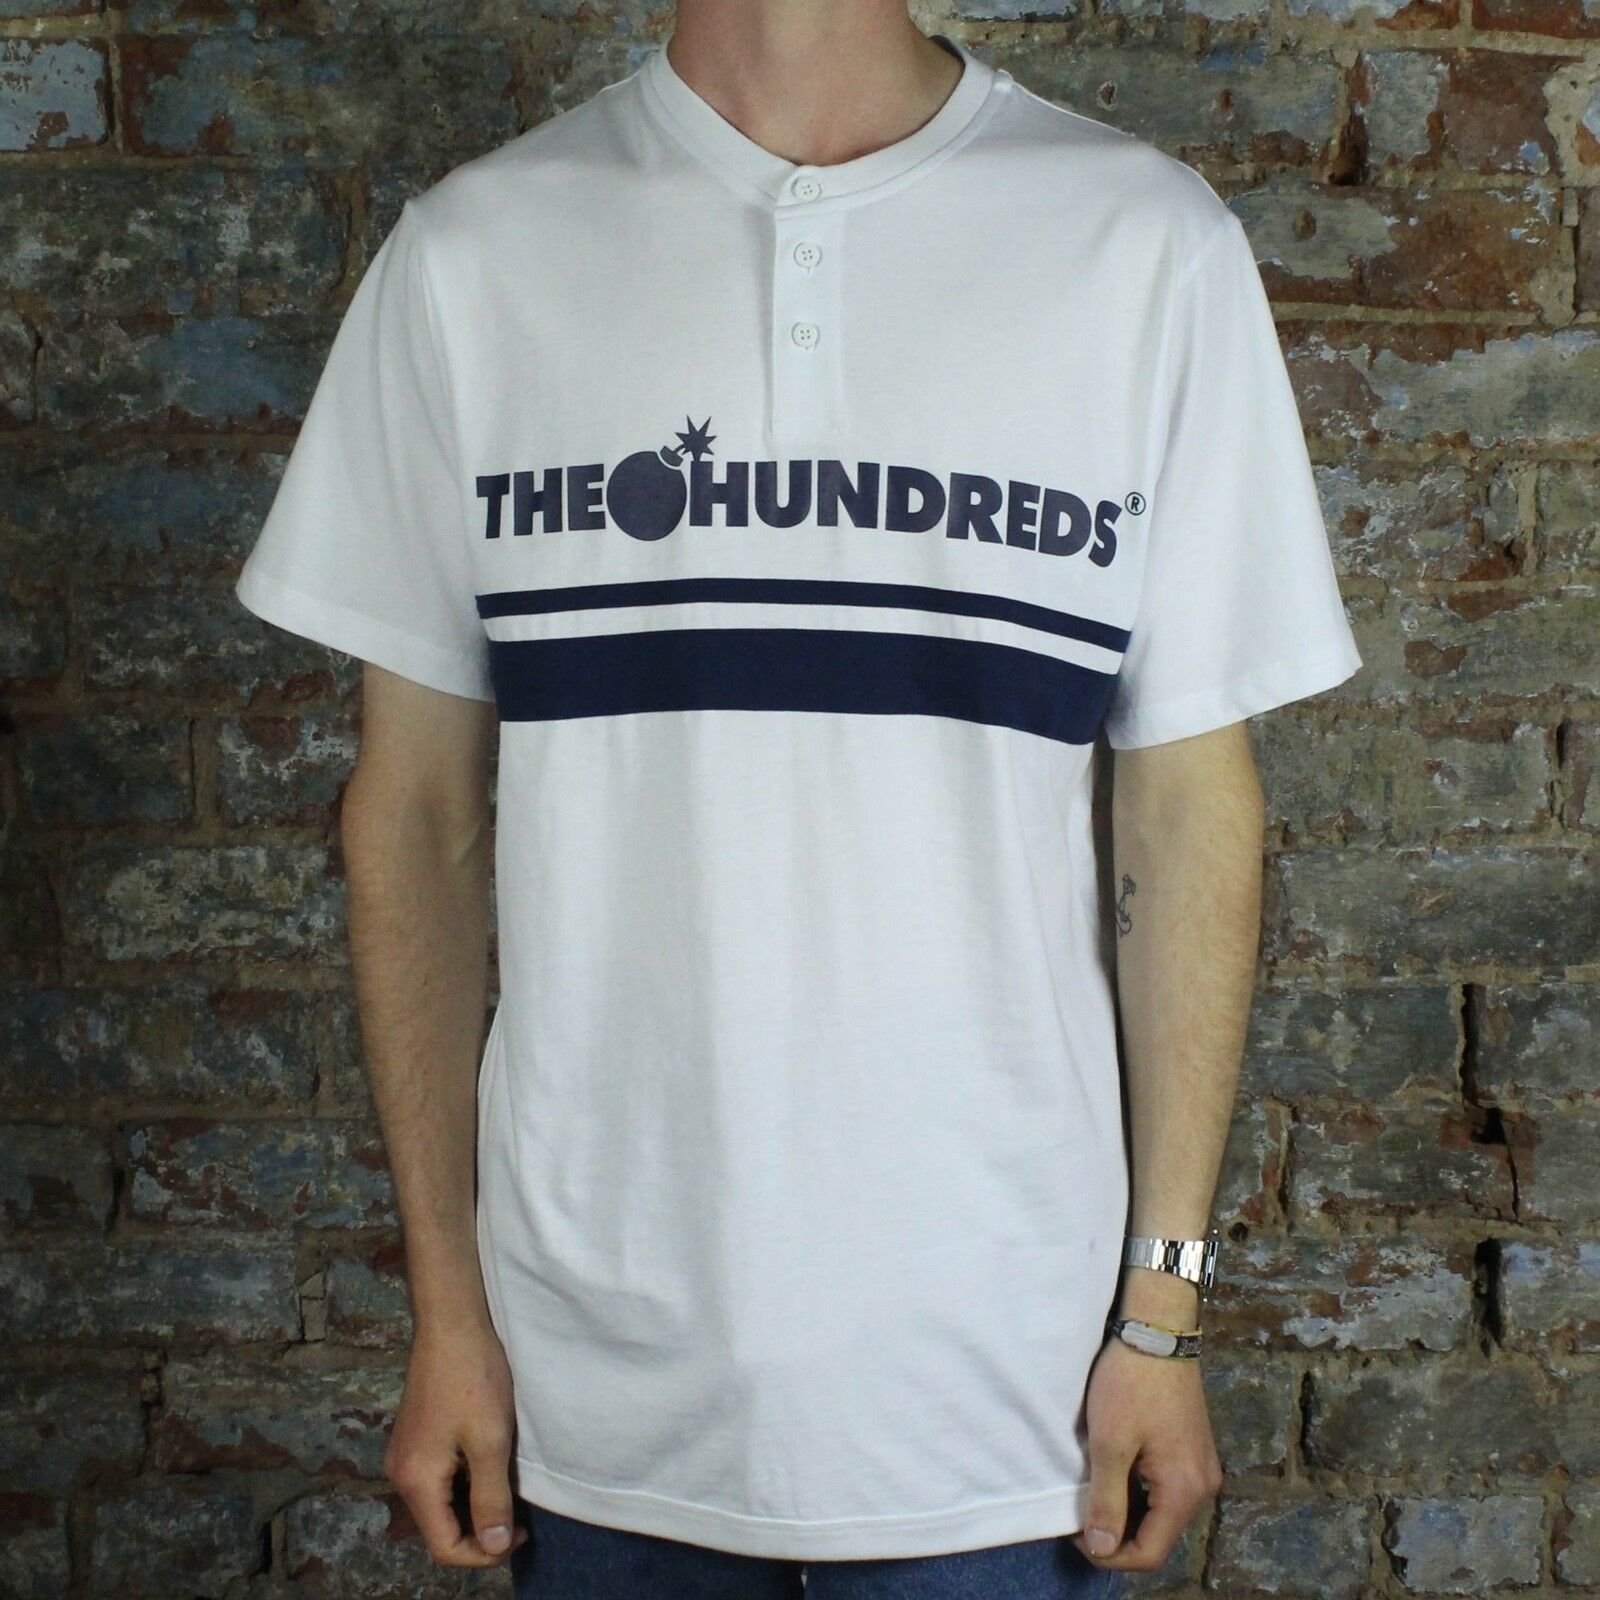 The HundROTs Pacific Henley T-Shirt Jersey - New in Weiß in Größe S,L